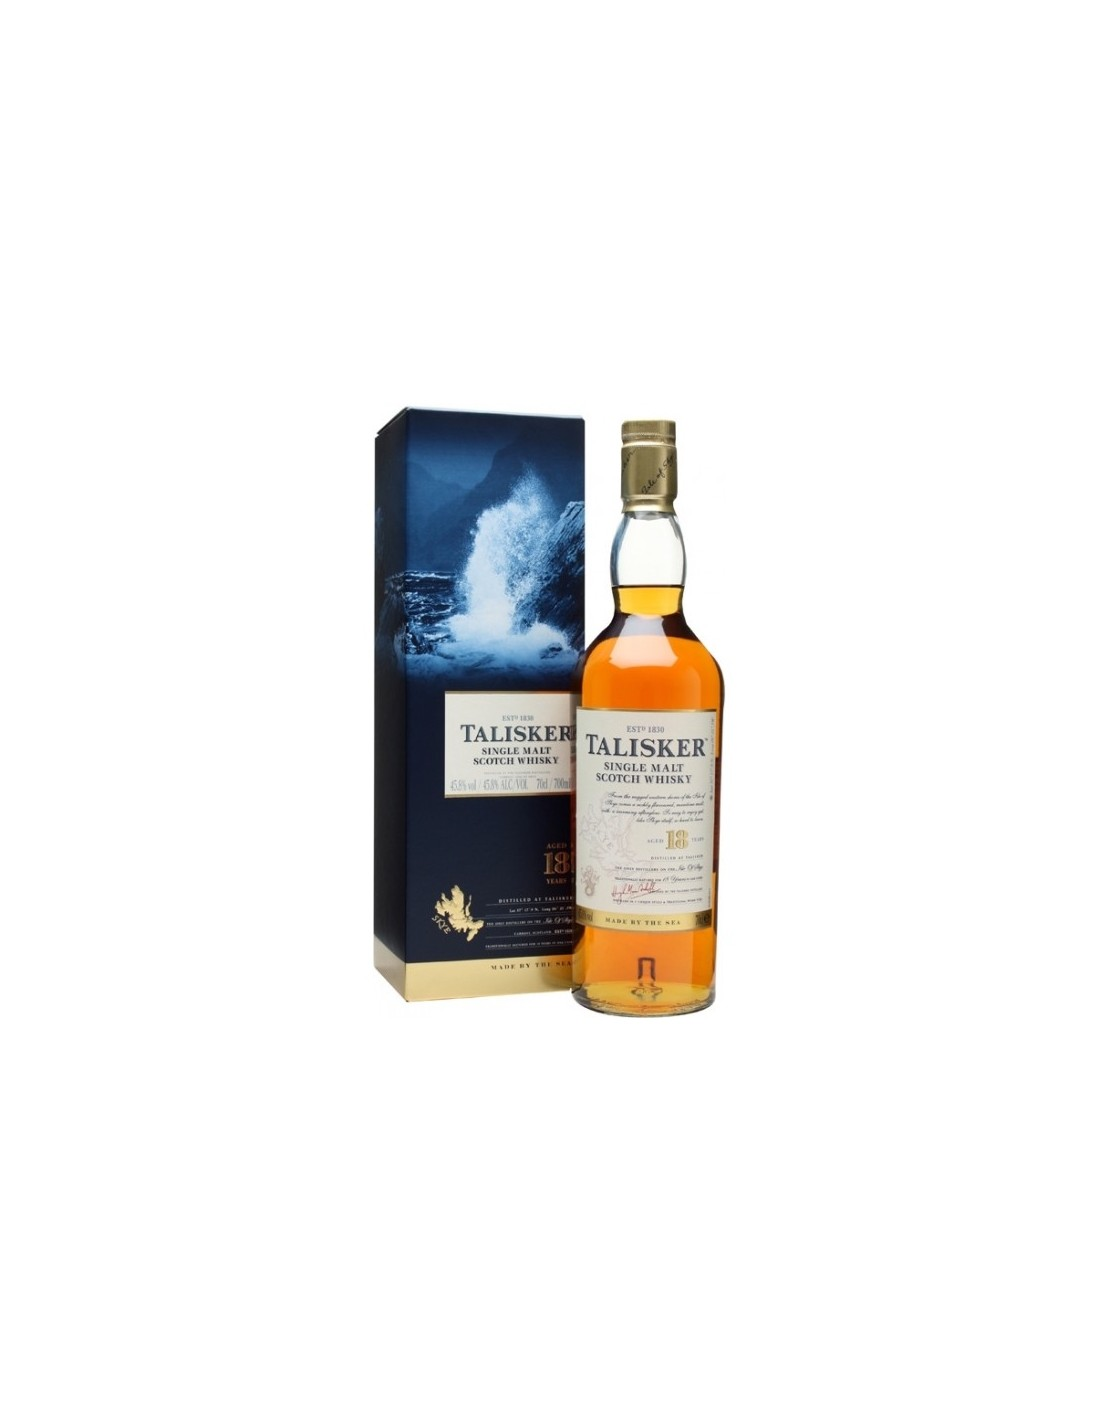 Whisky Single Malt Talisker, 18 ani, 45.8% alc., 0.7L, Scotia